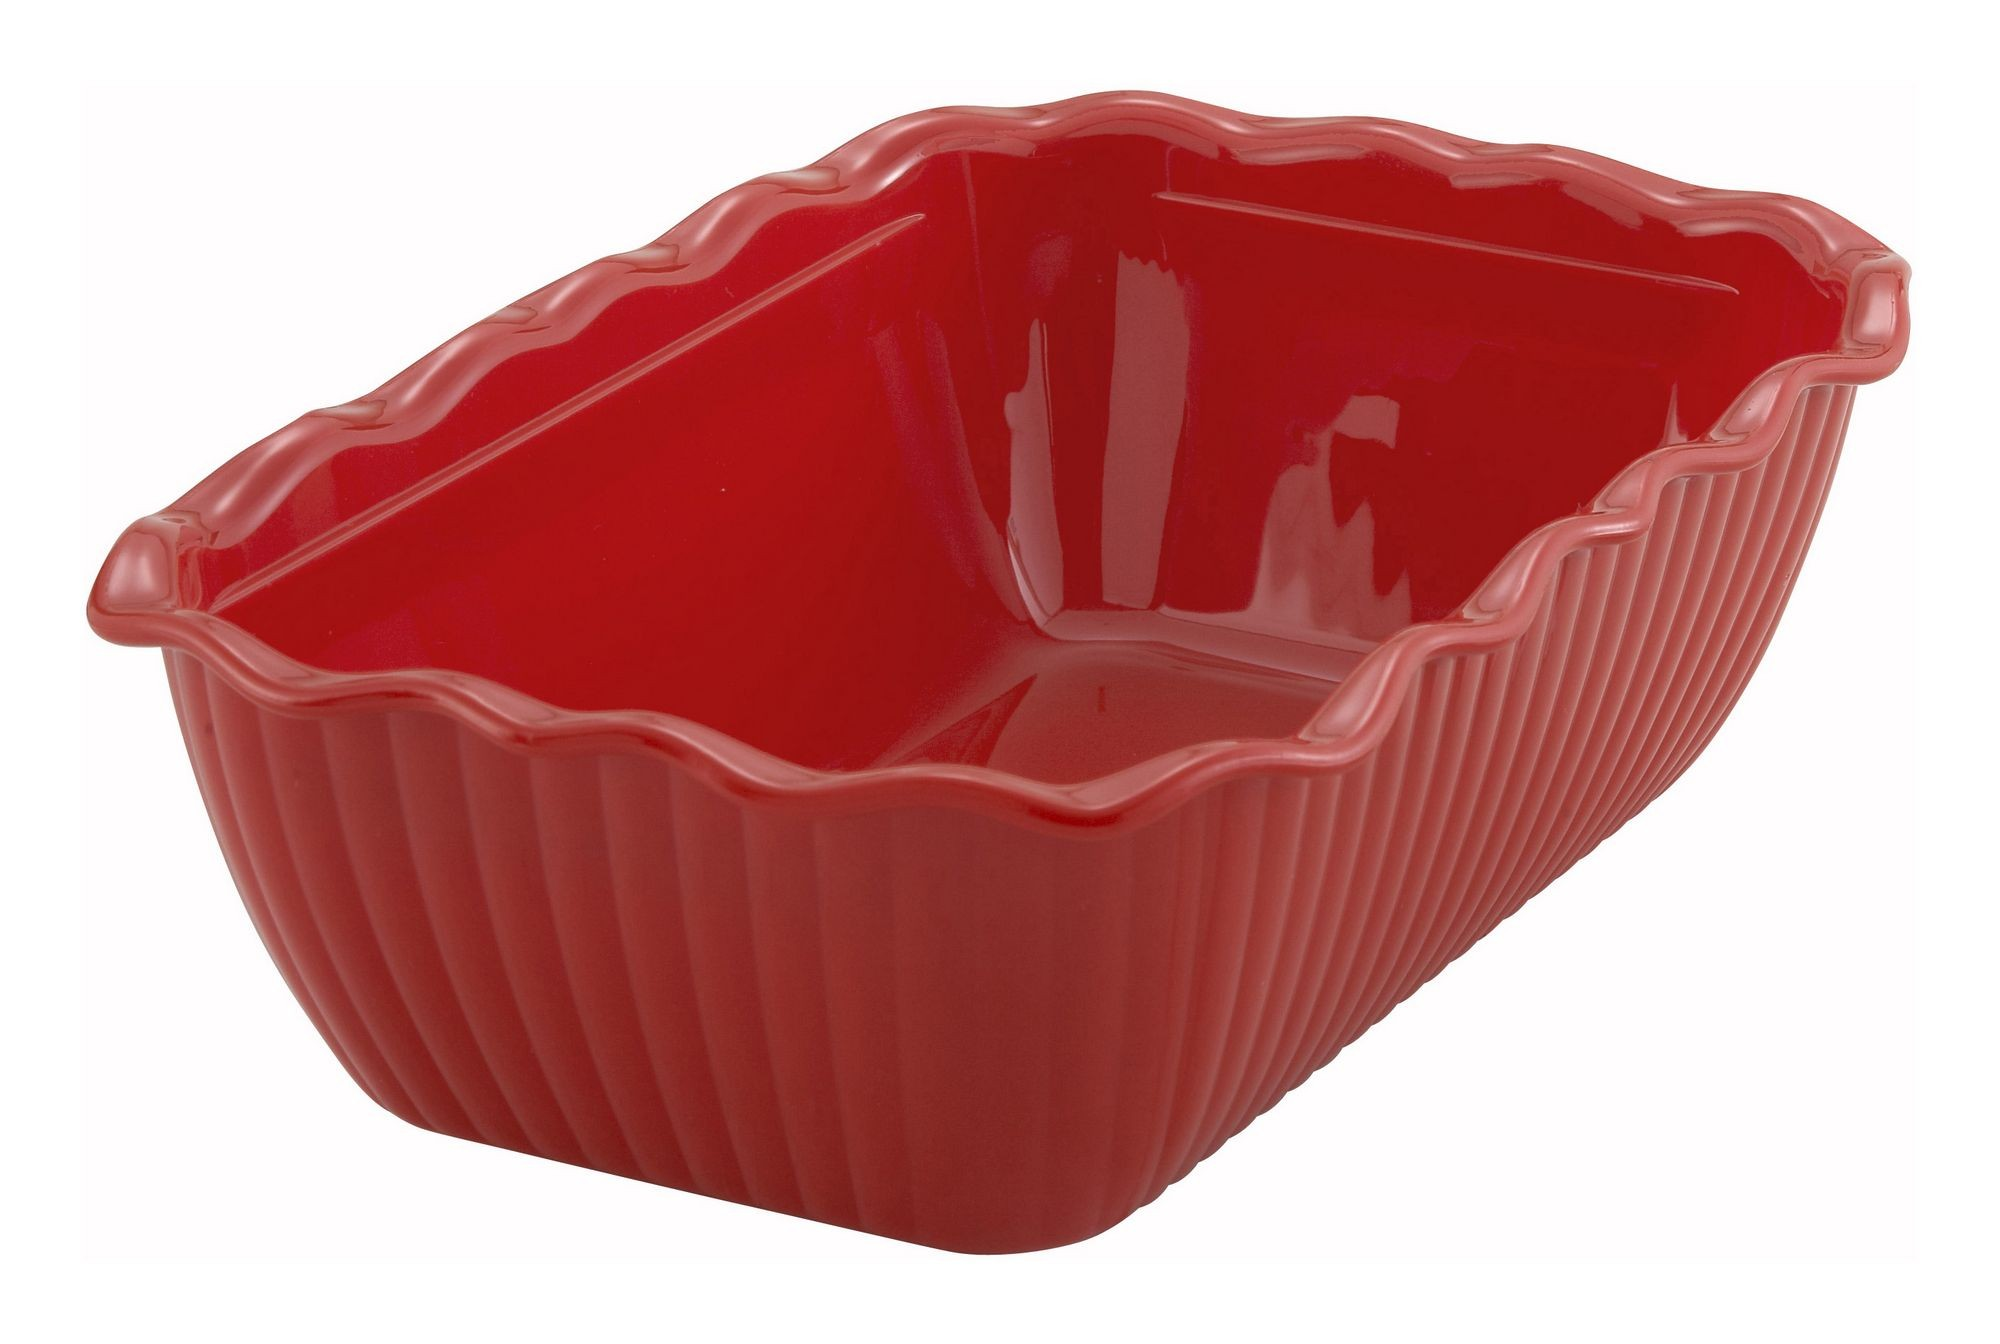 "Winco CRK-10R Red Food Storage Container/Crock 10"" x 7"" x 3"""